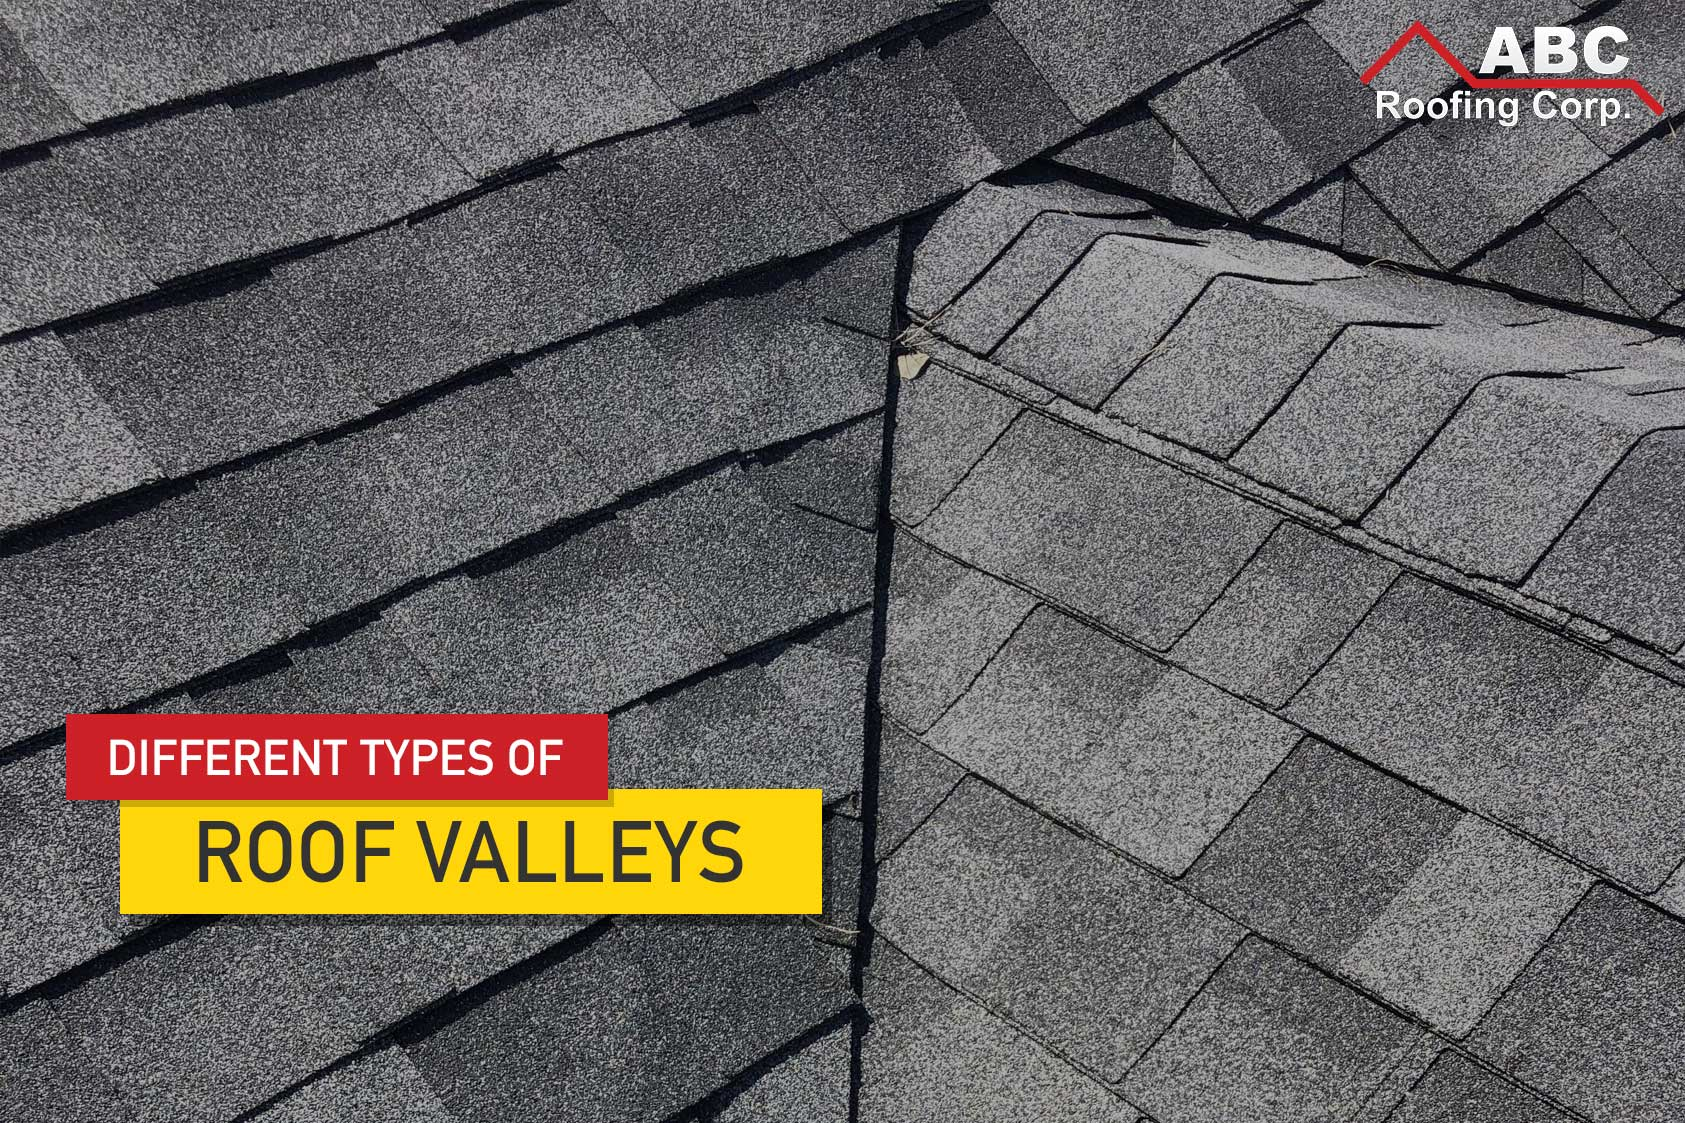 Different Types Of Roof Valleys